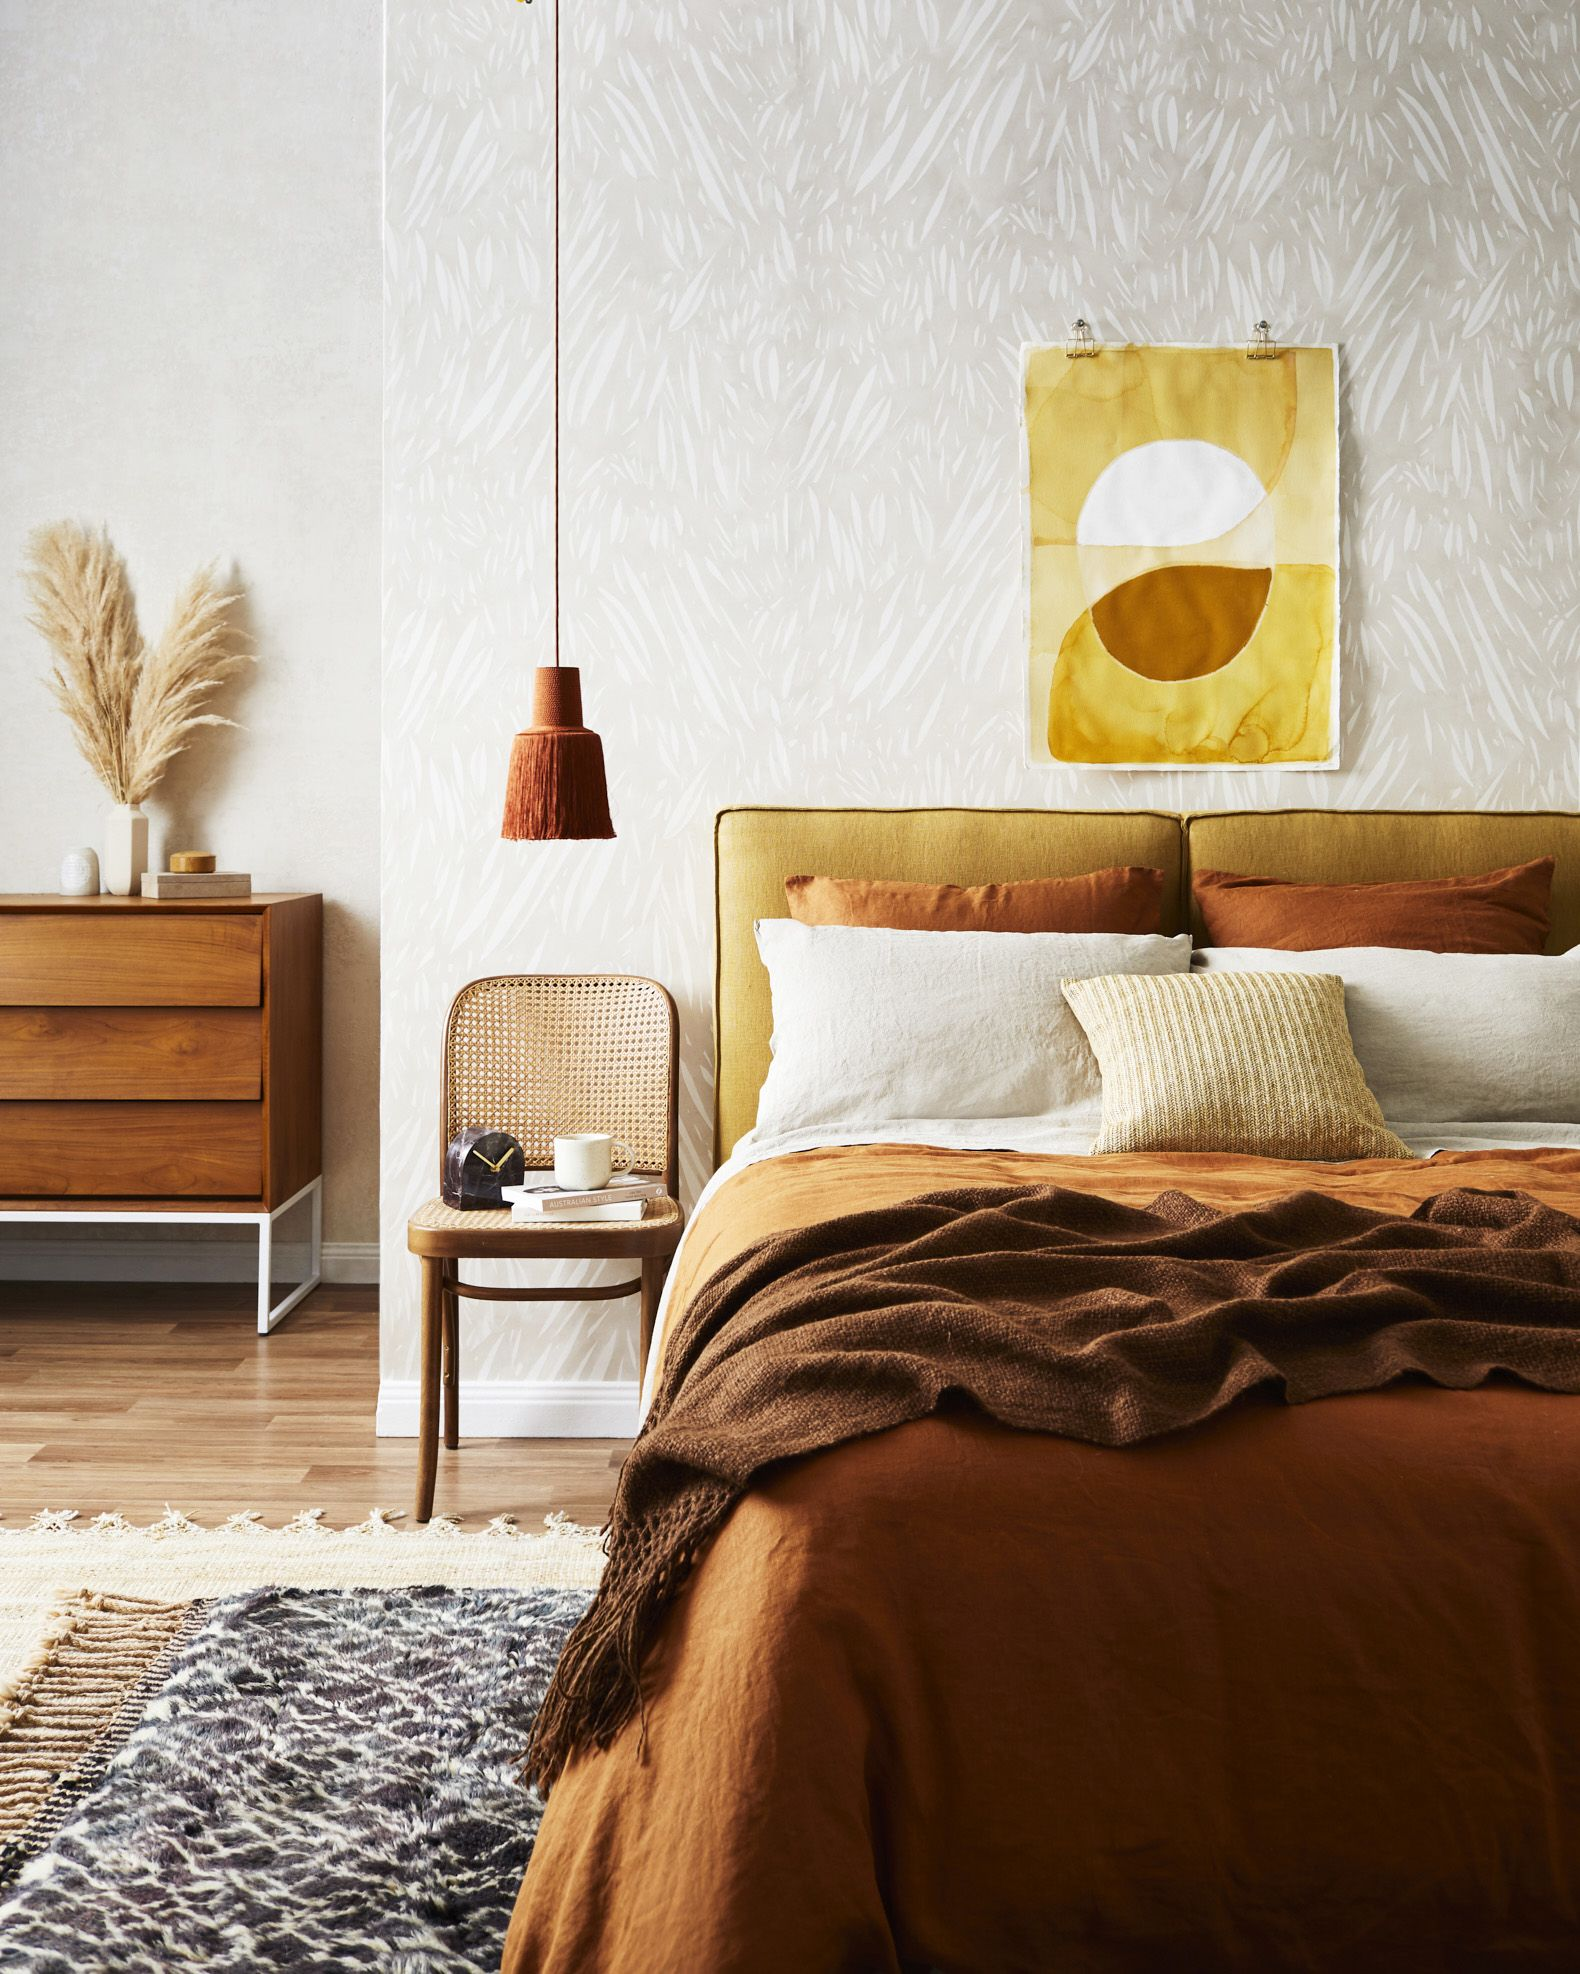 Warm Home Decor: Home Decor In Earthy Tones To Warm Your Home